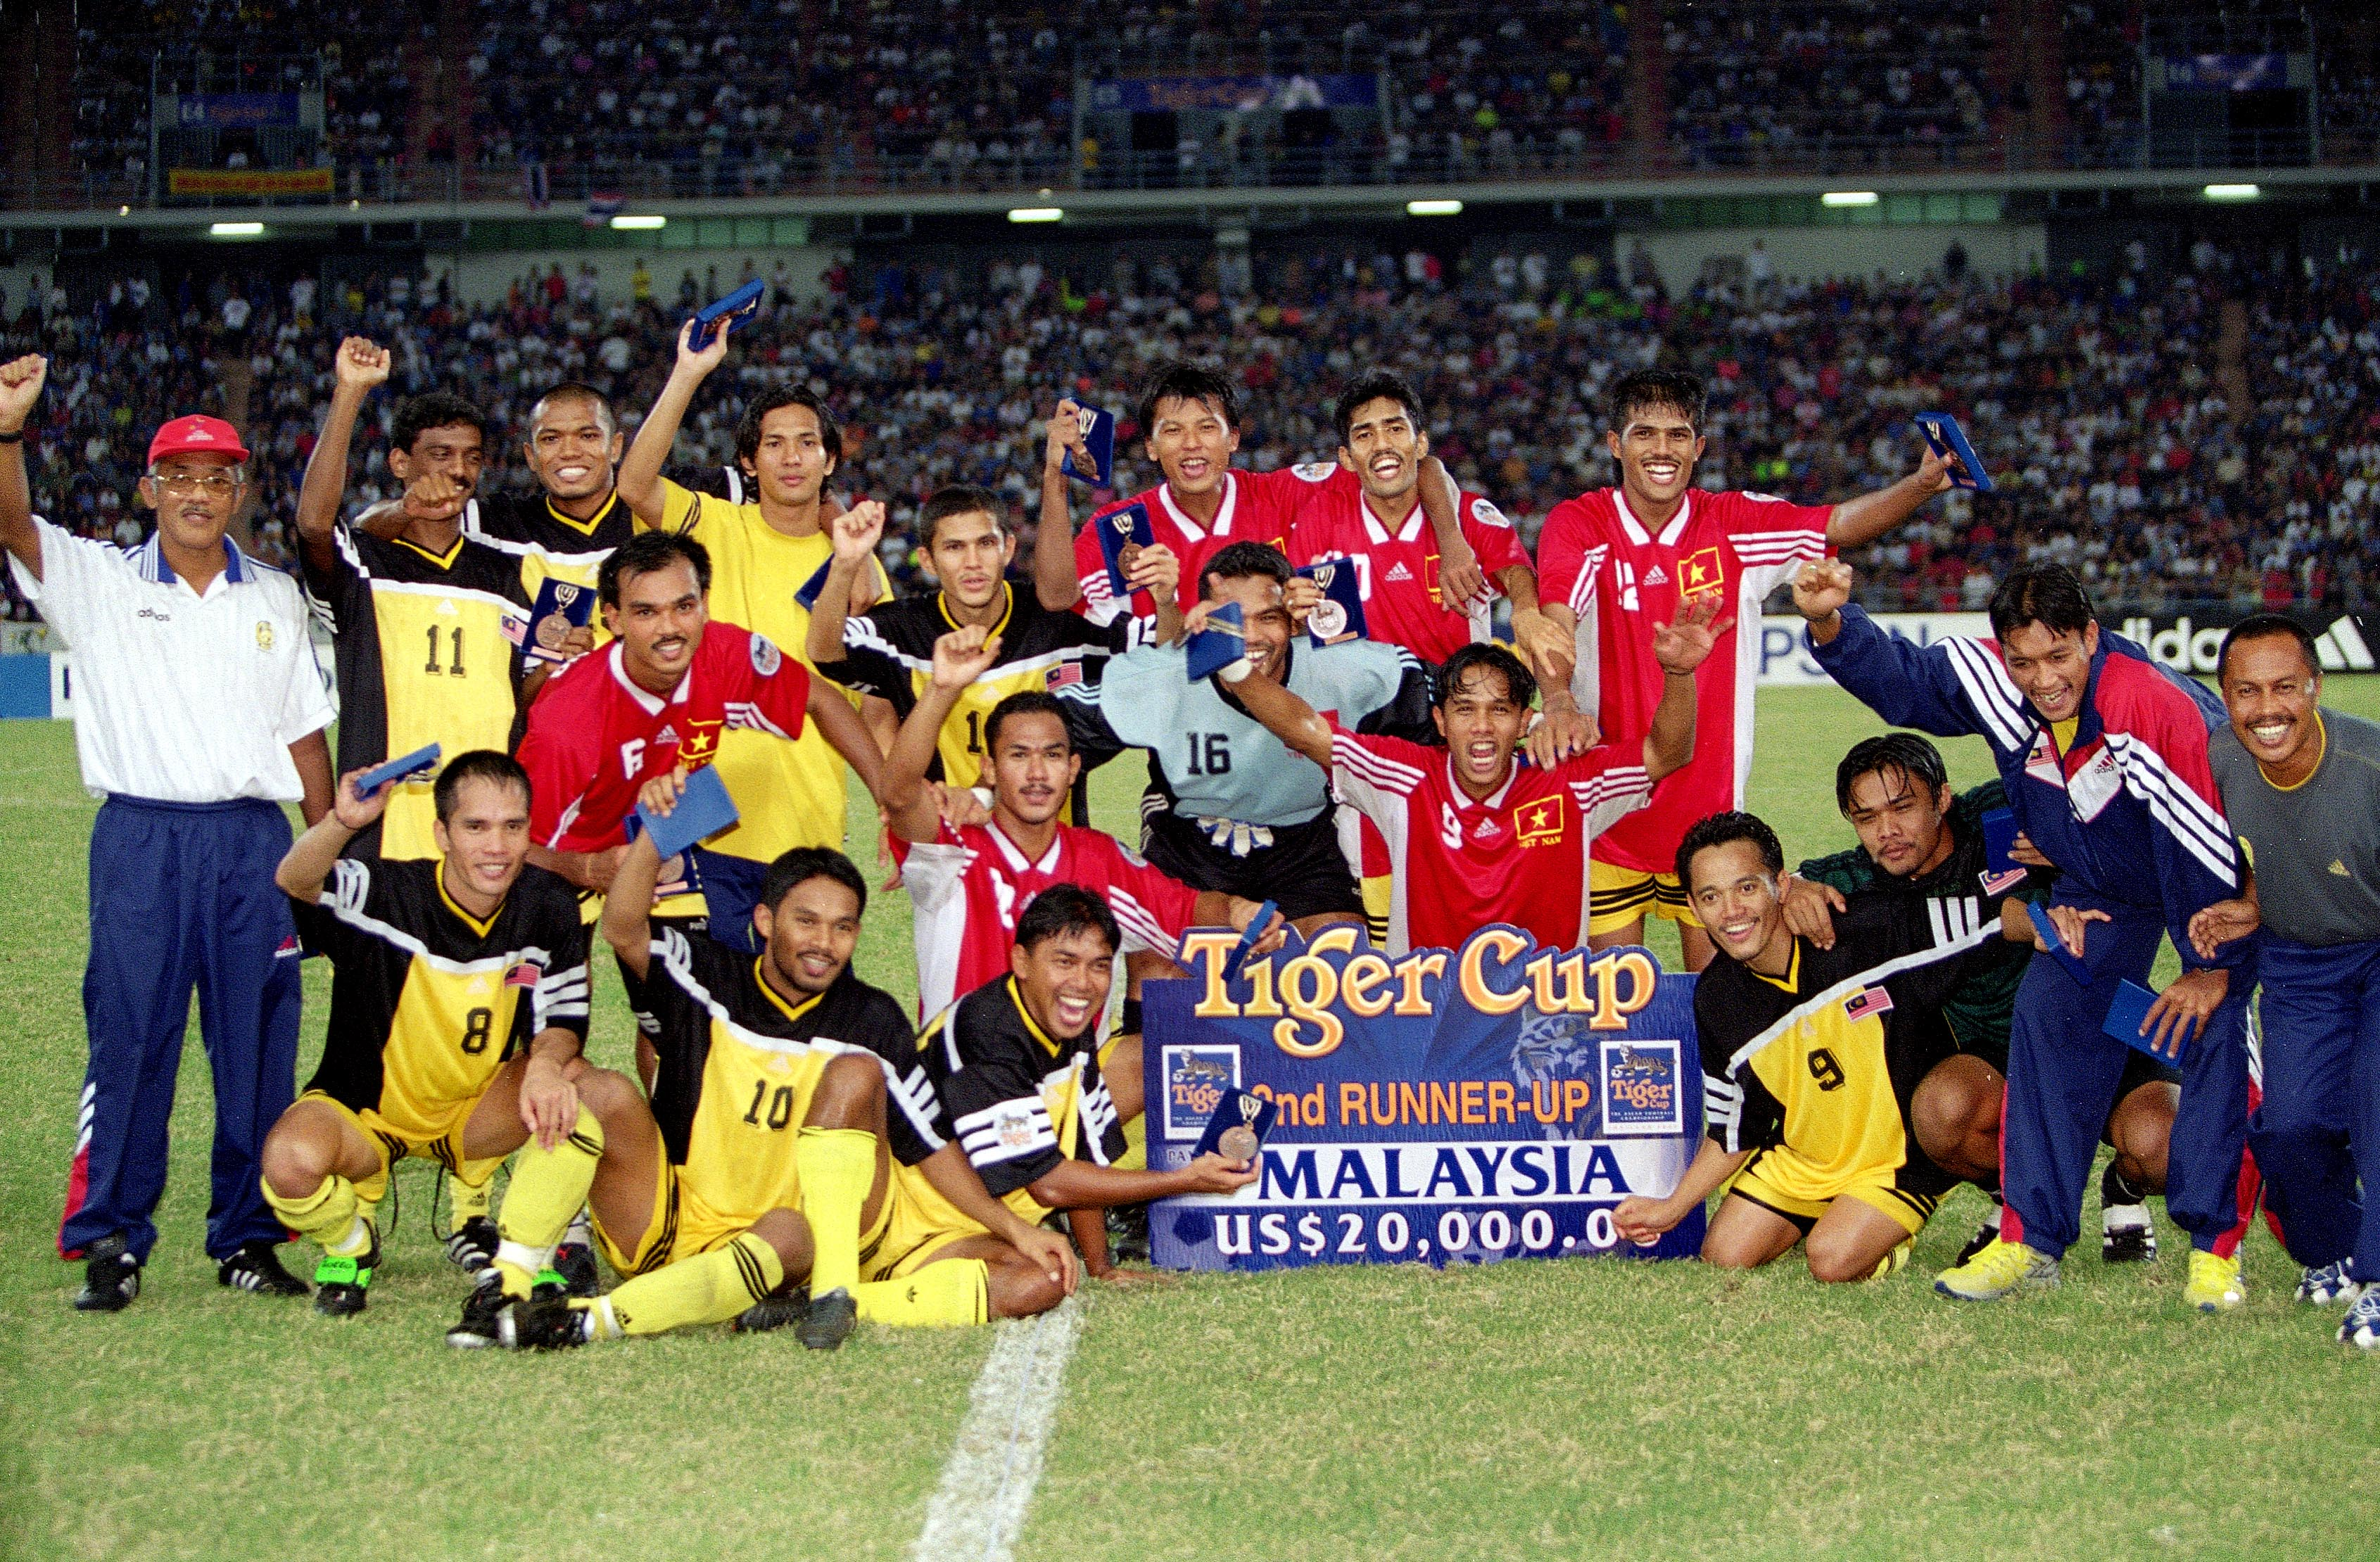 Malaysia team celebrating finishing third in the 2000 AFF Cup